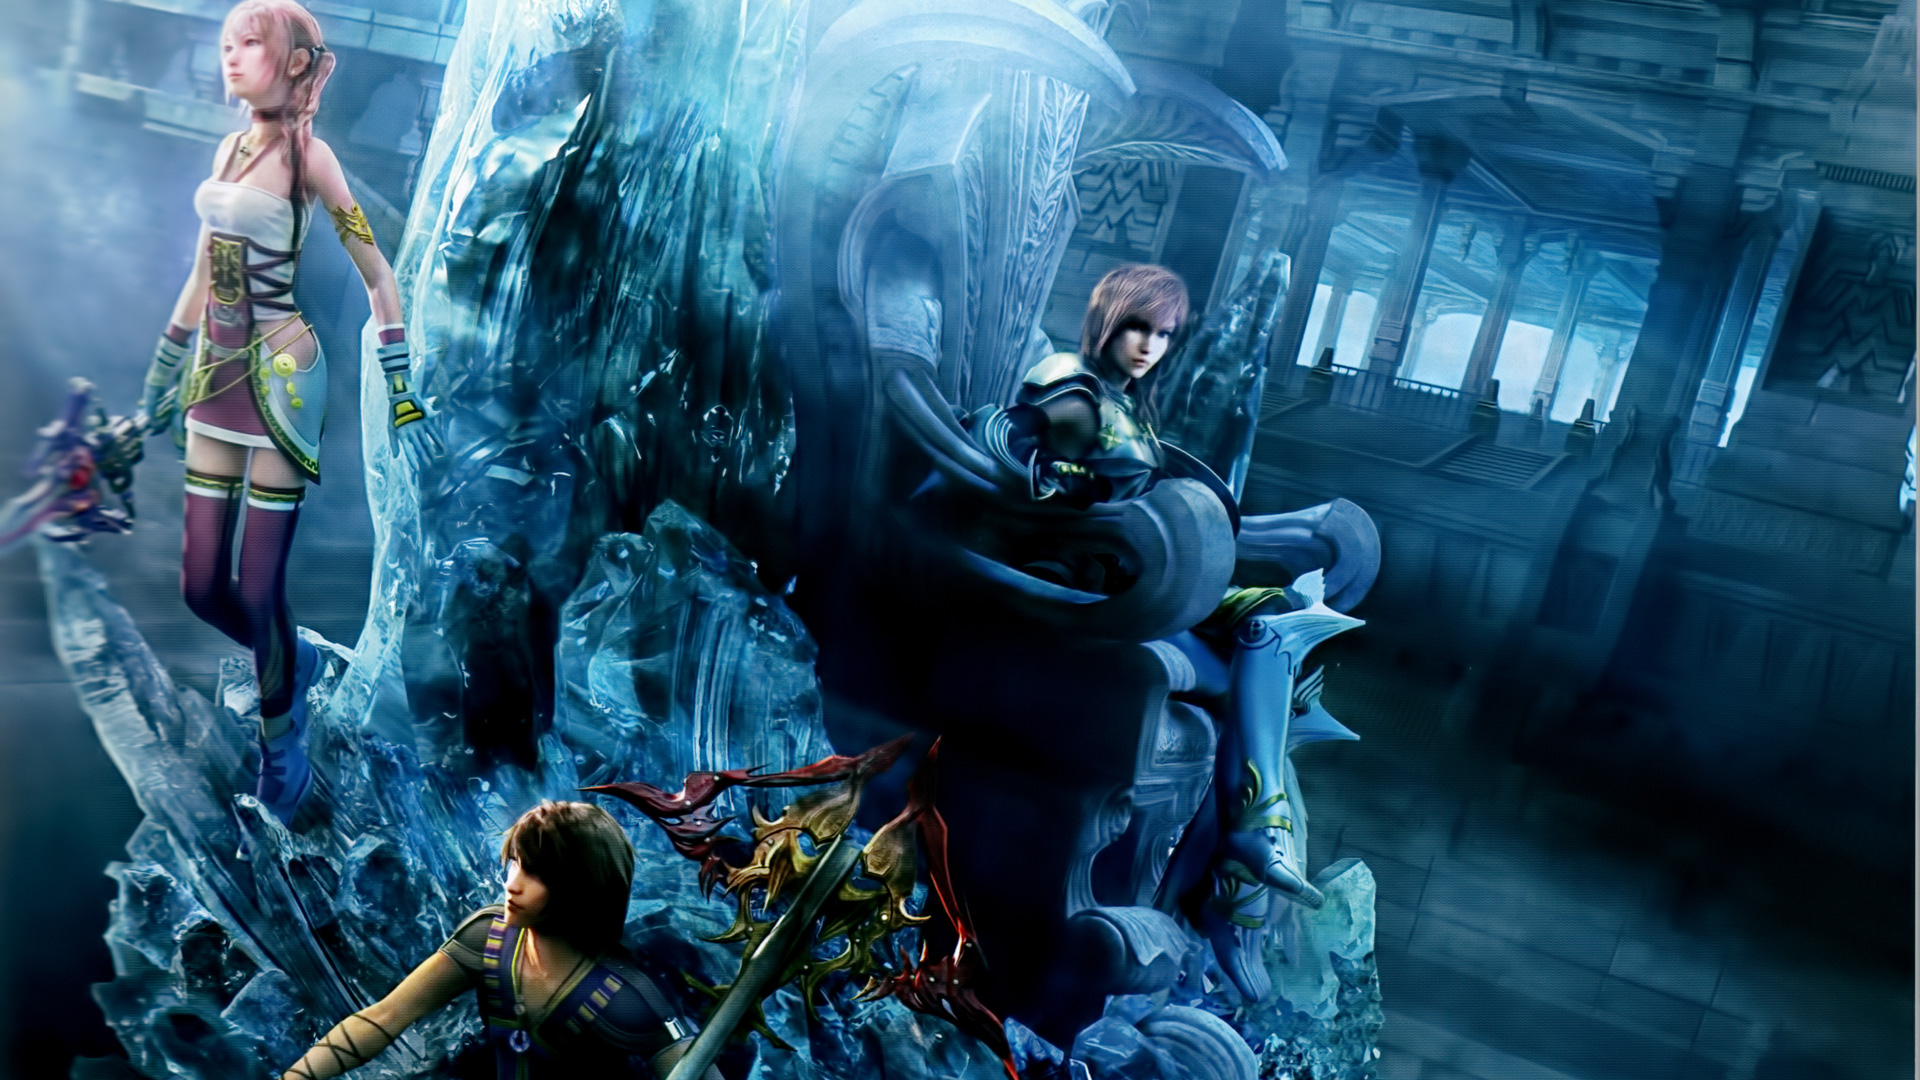 Free Download Final Fantasy Xiii Wallpapers Is High Definition